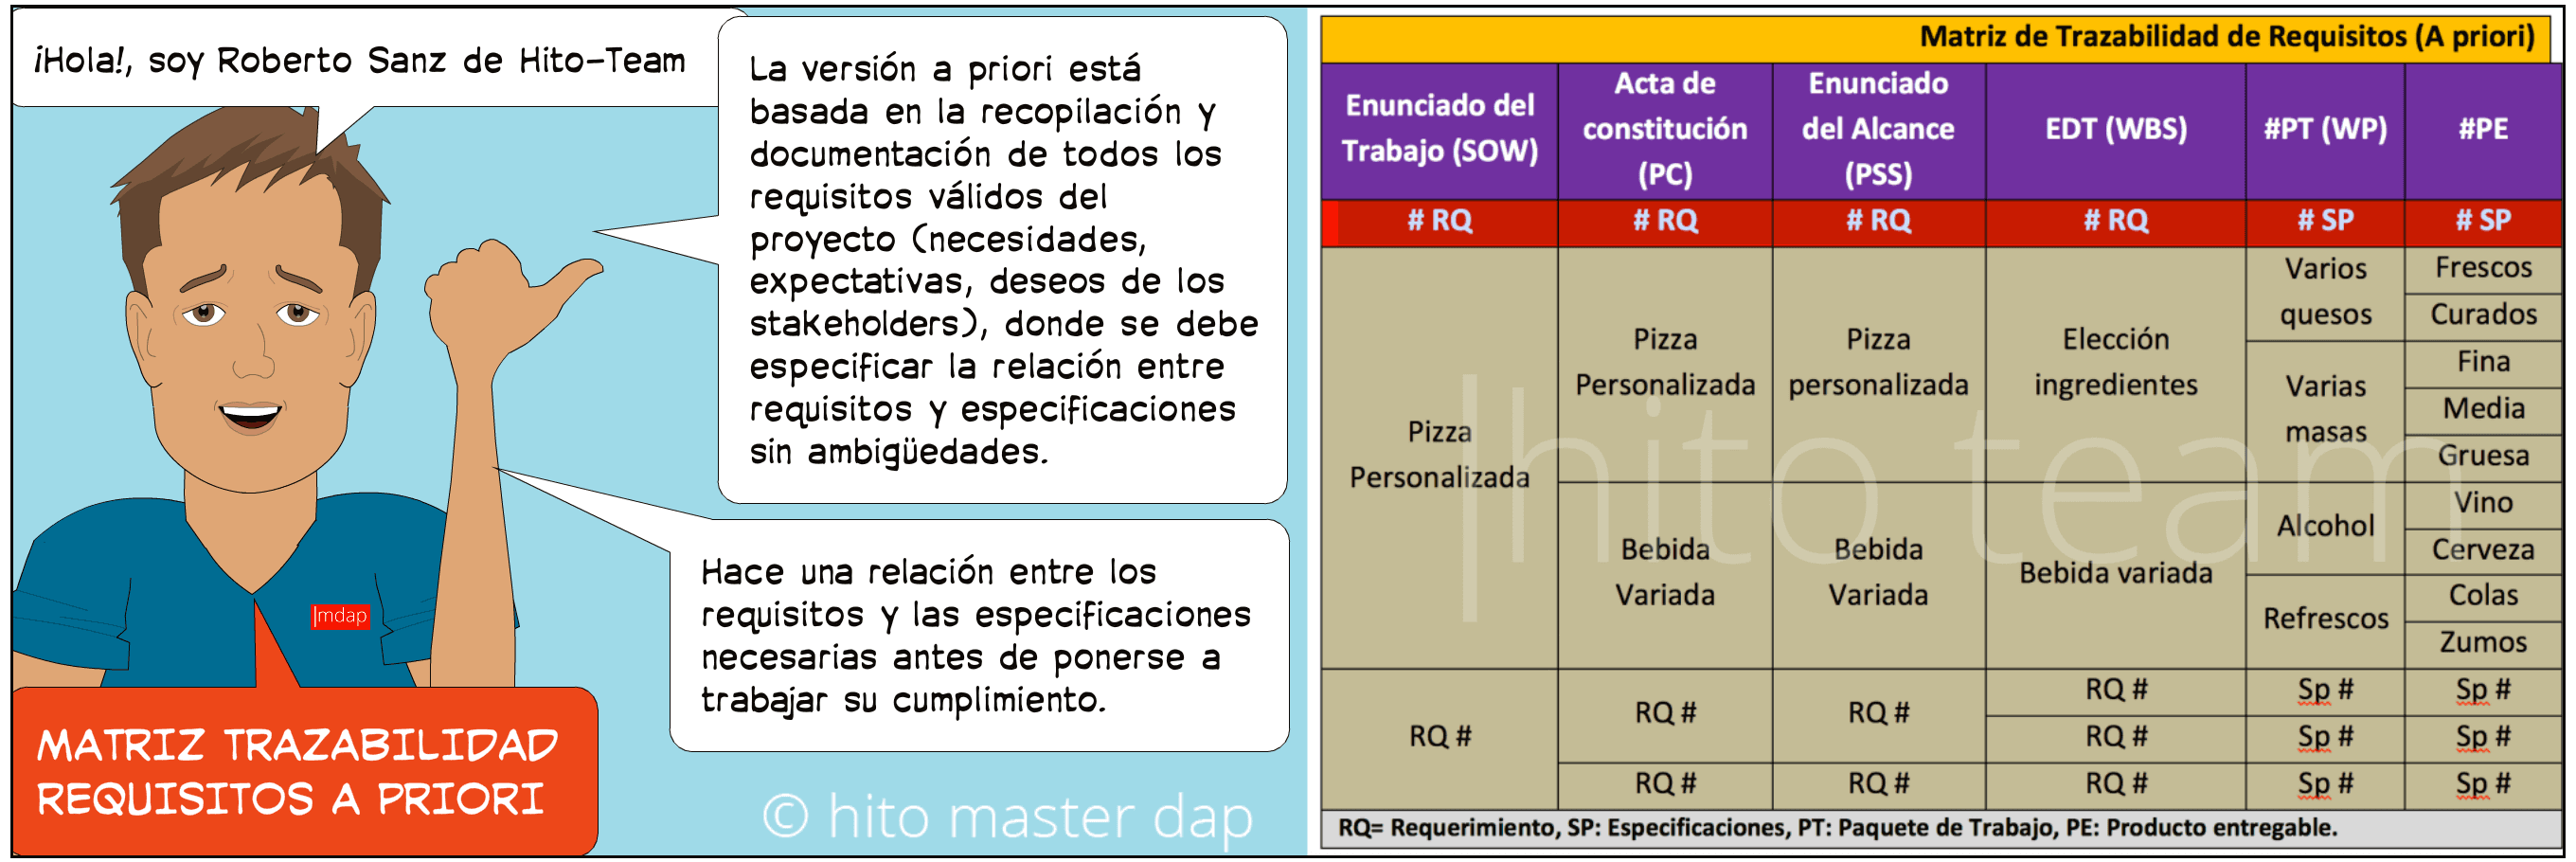 Matriz de trazabilidad de requisitos a priori